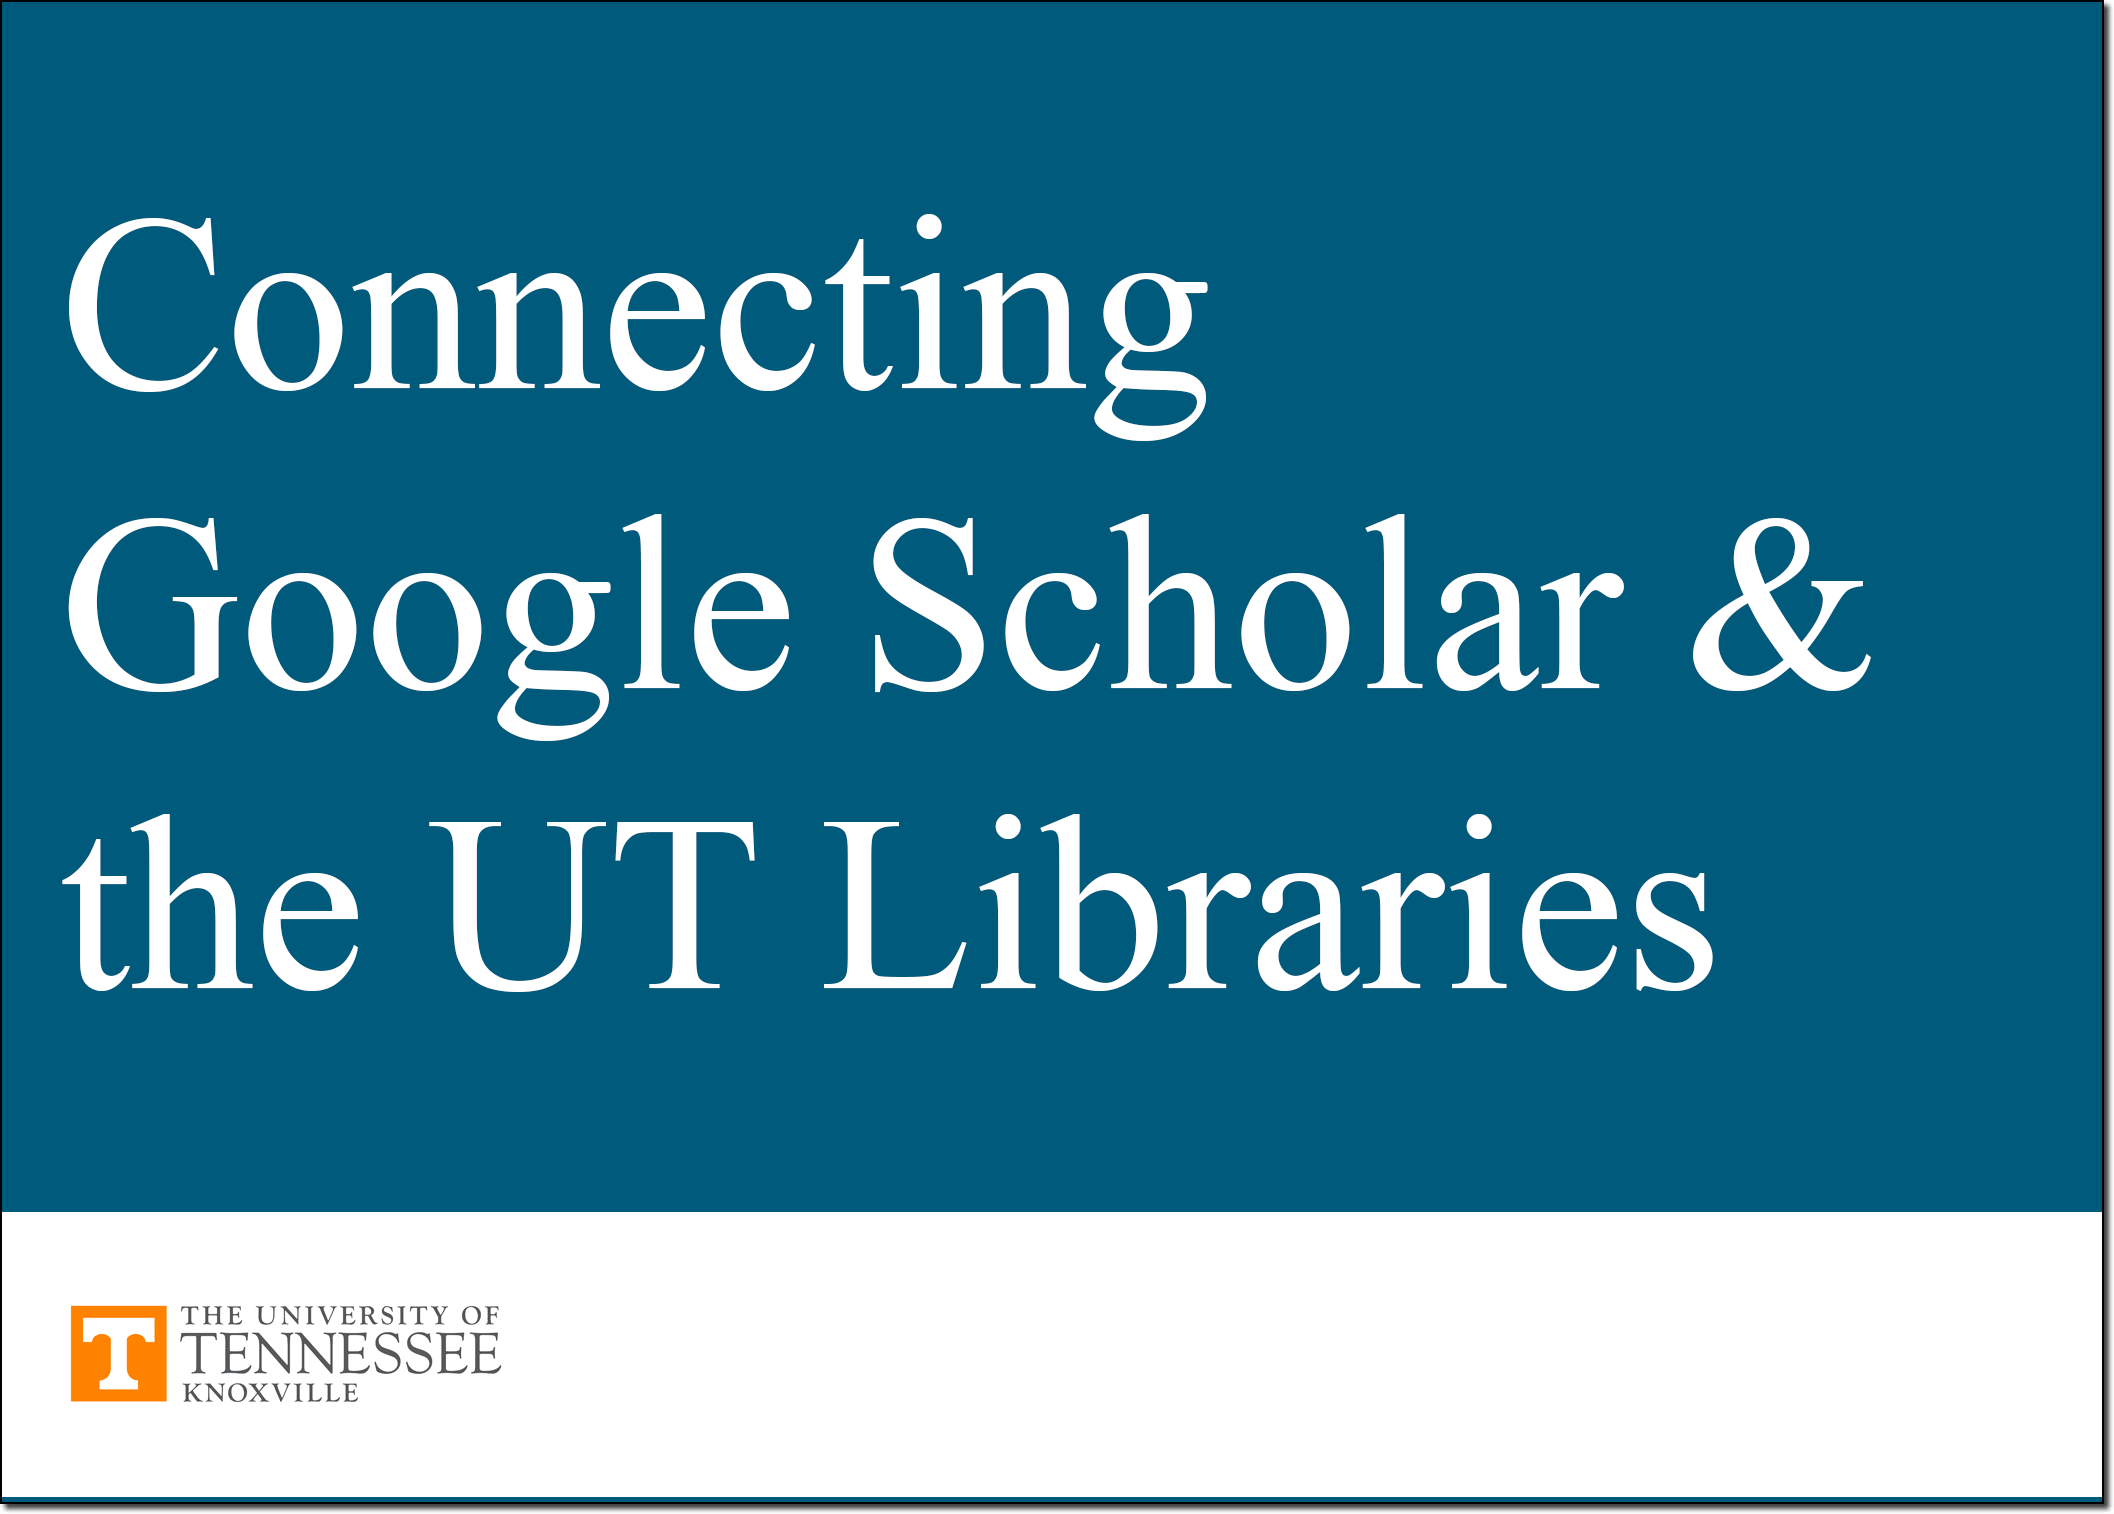 Connecting Google Scholar and the UT Libraries tutorial.